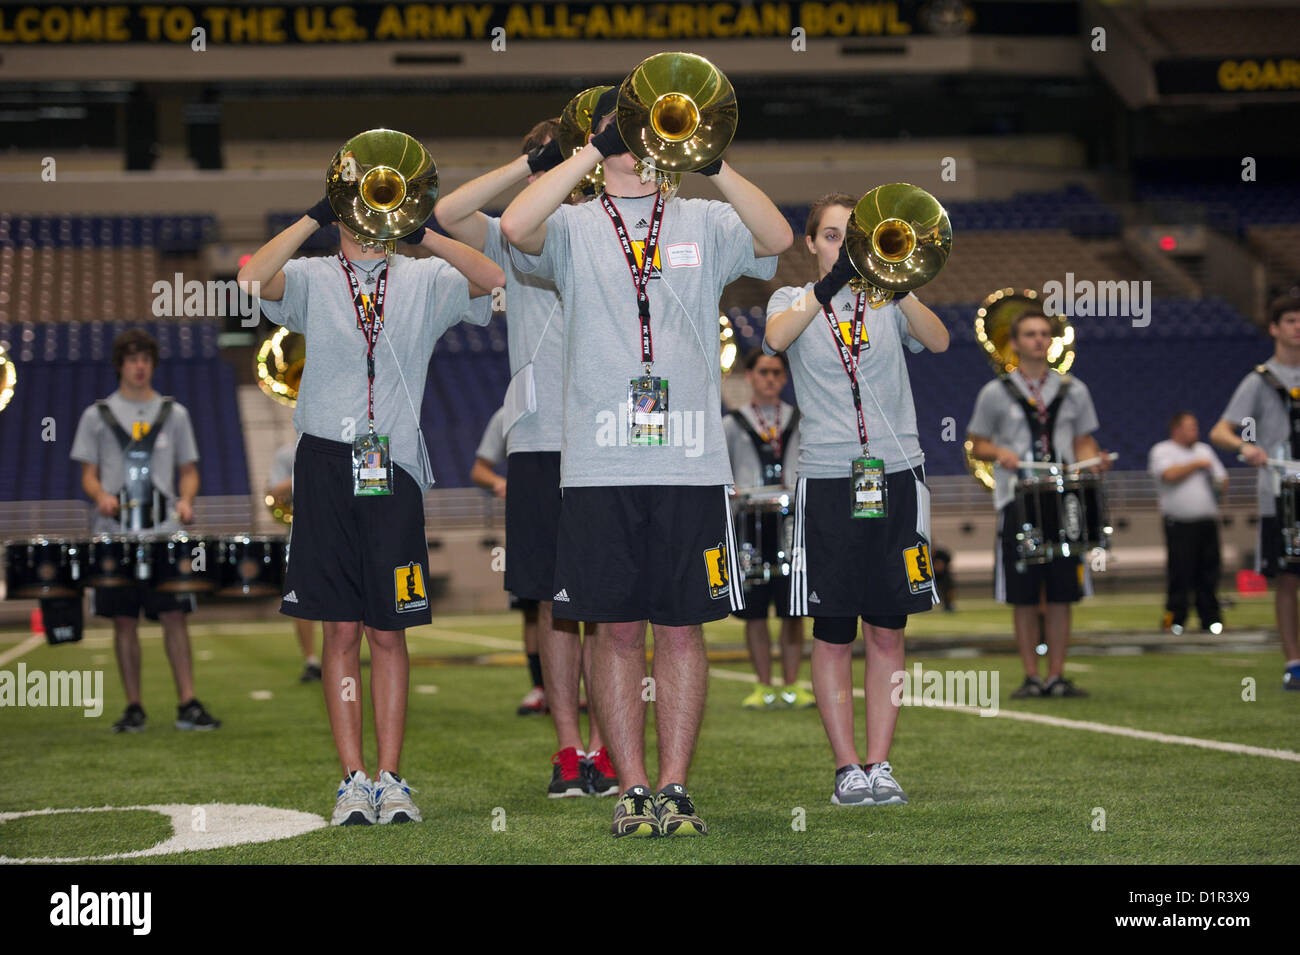 Image result for us army all american marching band